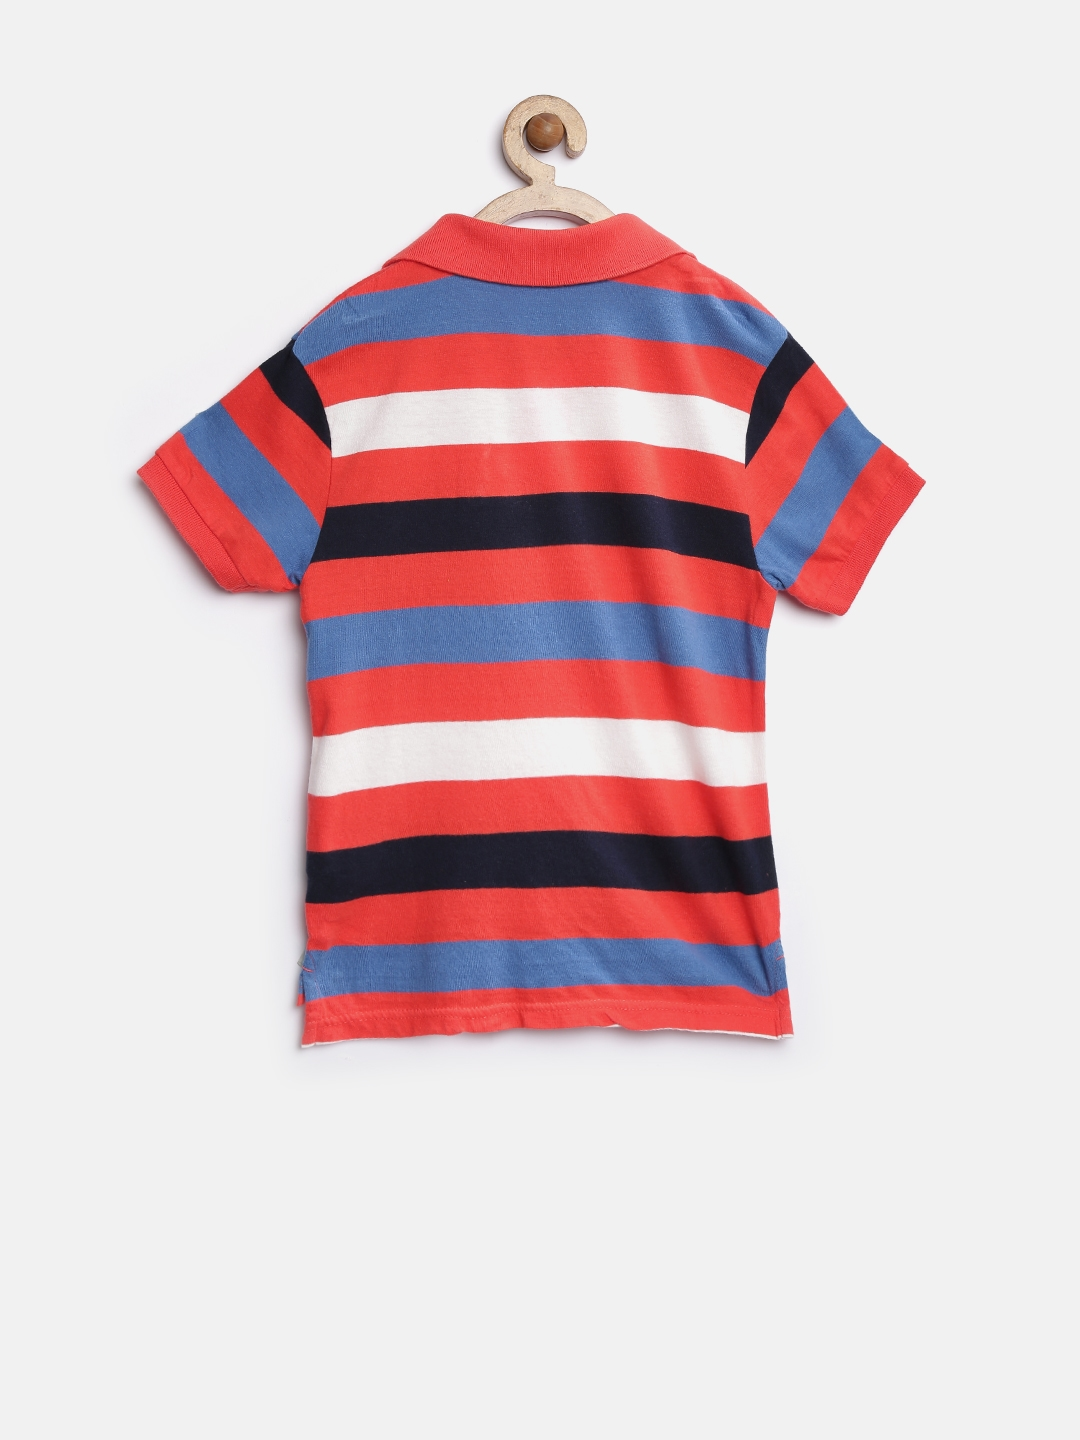 882a84043 Red Childrens Polo Shirts - DREAMWORKS